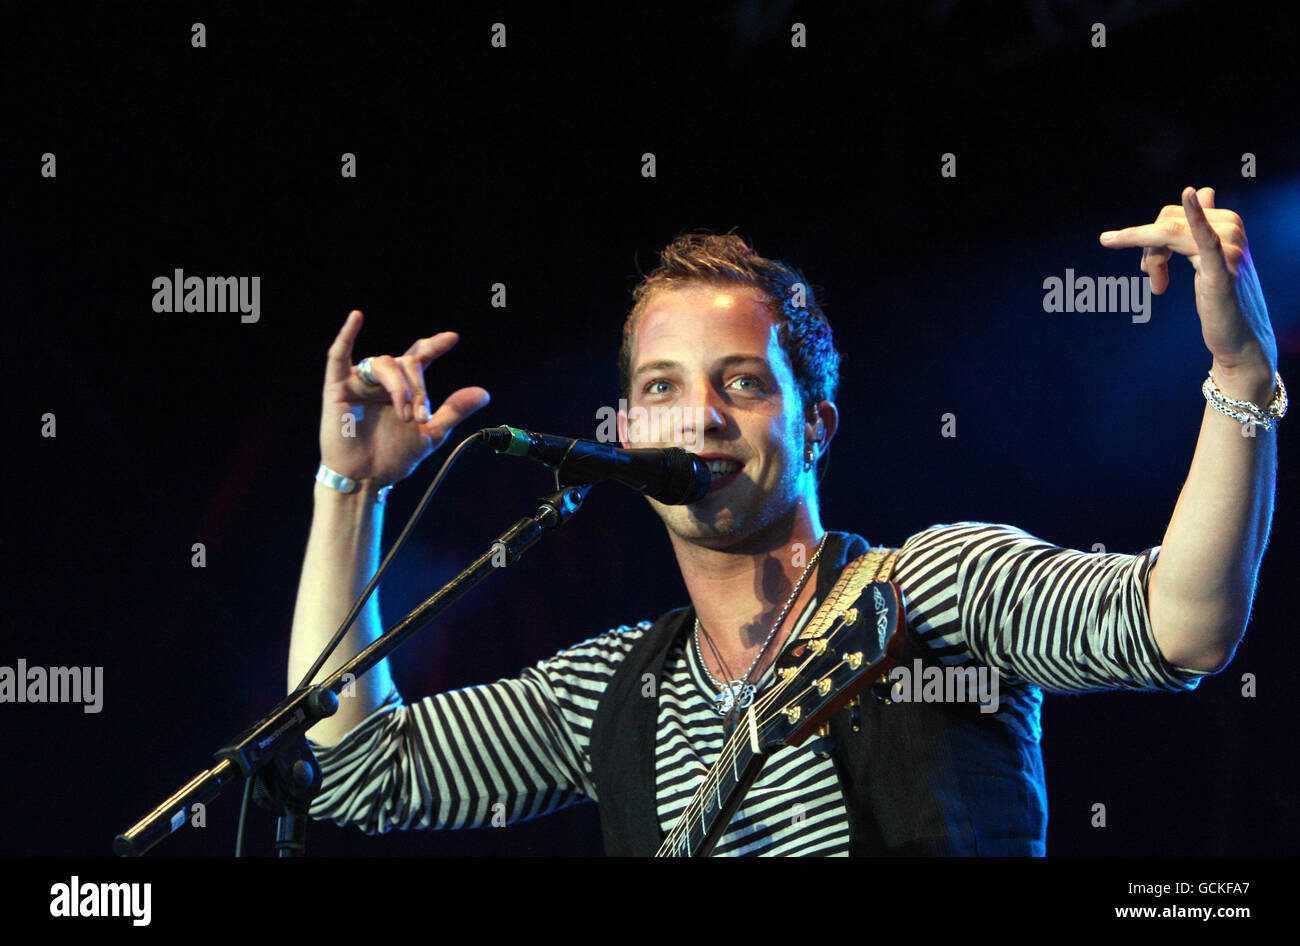 James Morrison performs at Epsom Downs racecourse - Stock Image